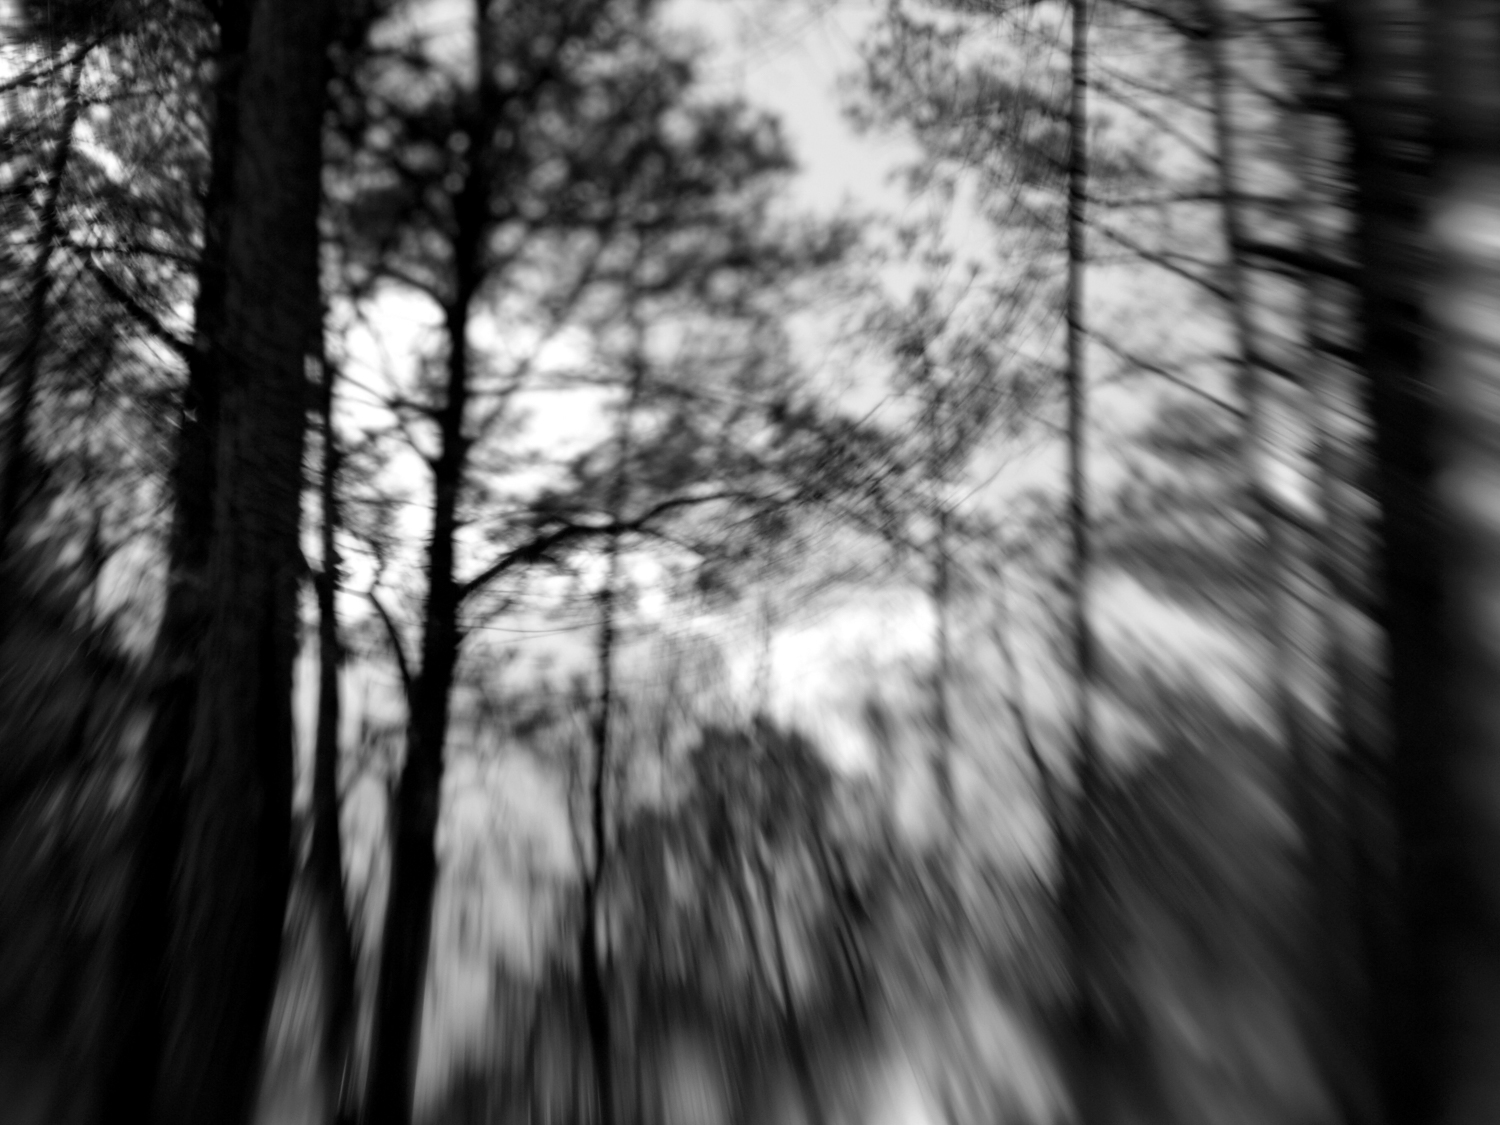 Taken in my backyard, in Raleigh, North carolina - with my lensbaby lens.